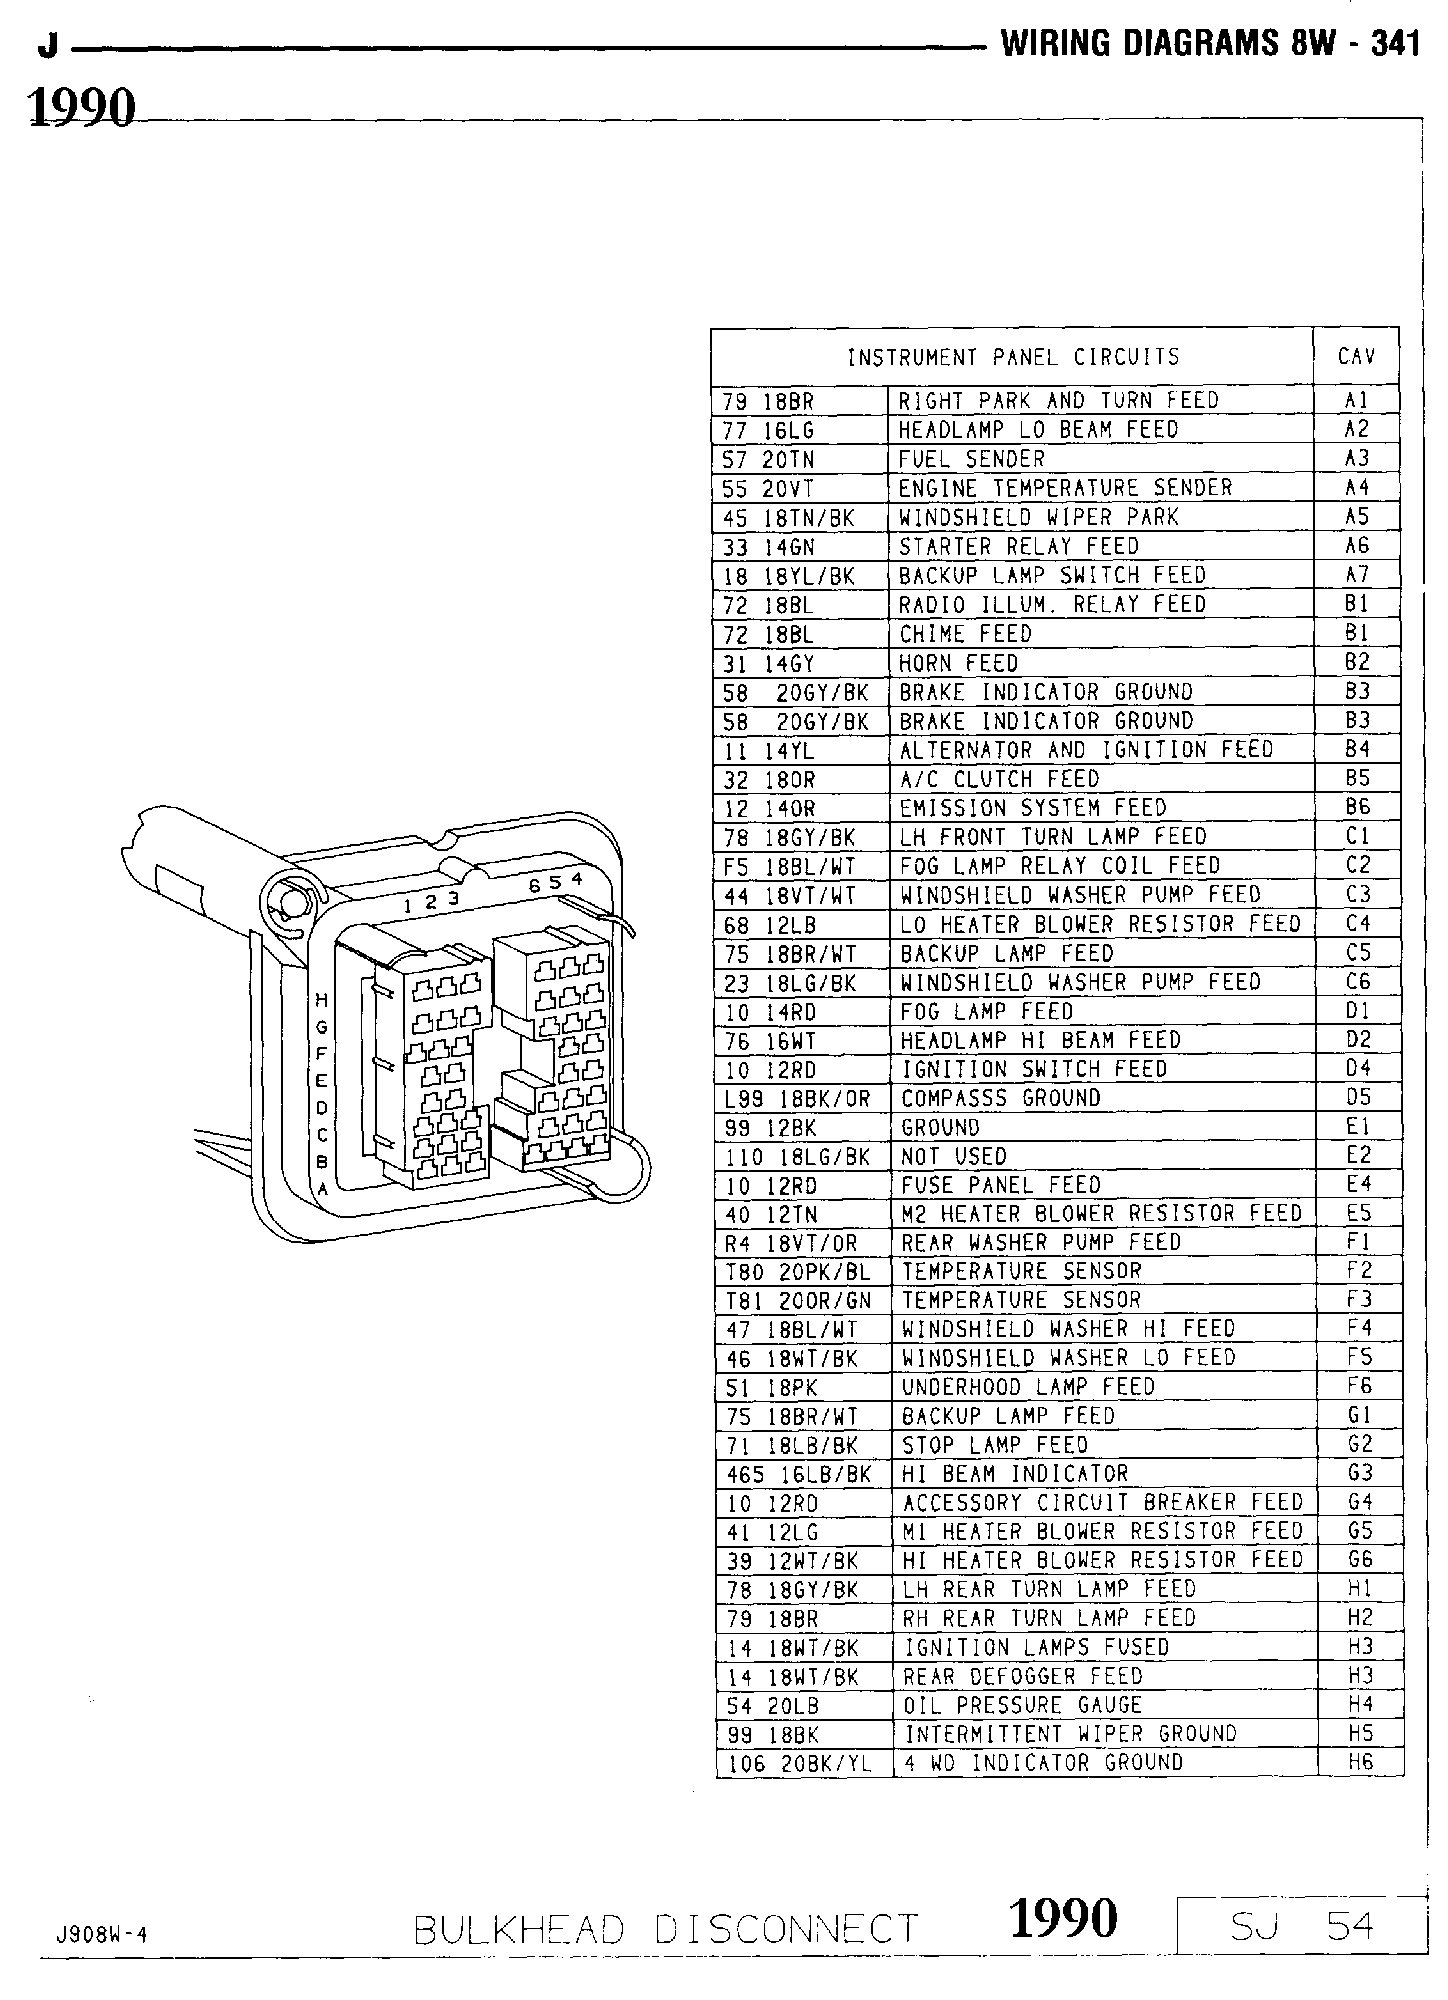 Tom Oljeep Collins Fsj Wiring Page 1990 Jeep Wrangler Starting System Diagram Bulkhead Disconnect Instrument Panel